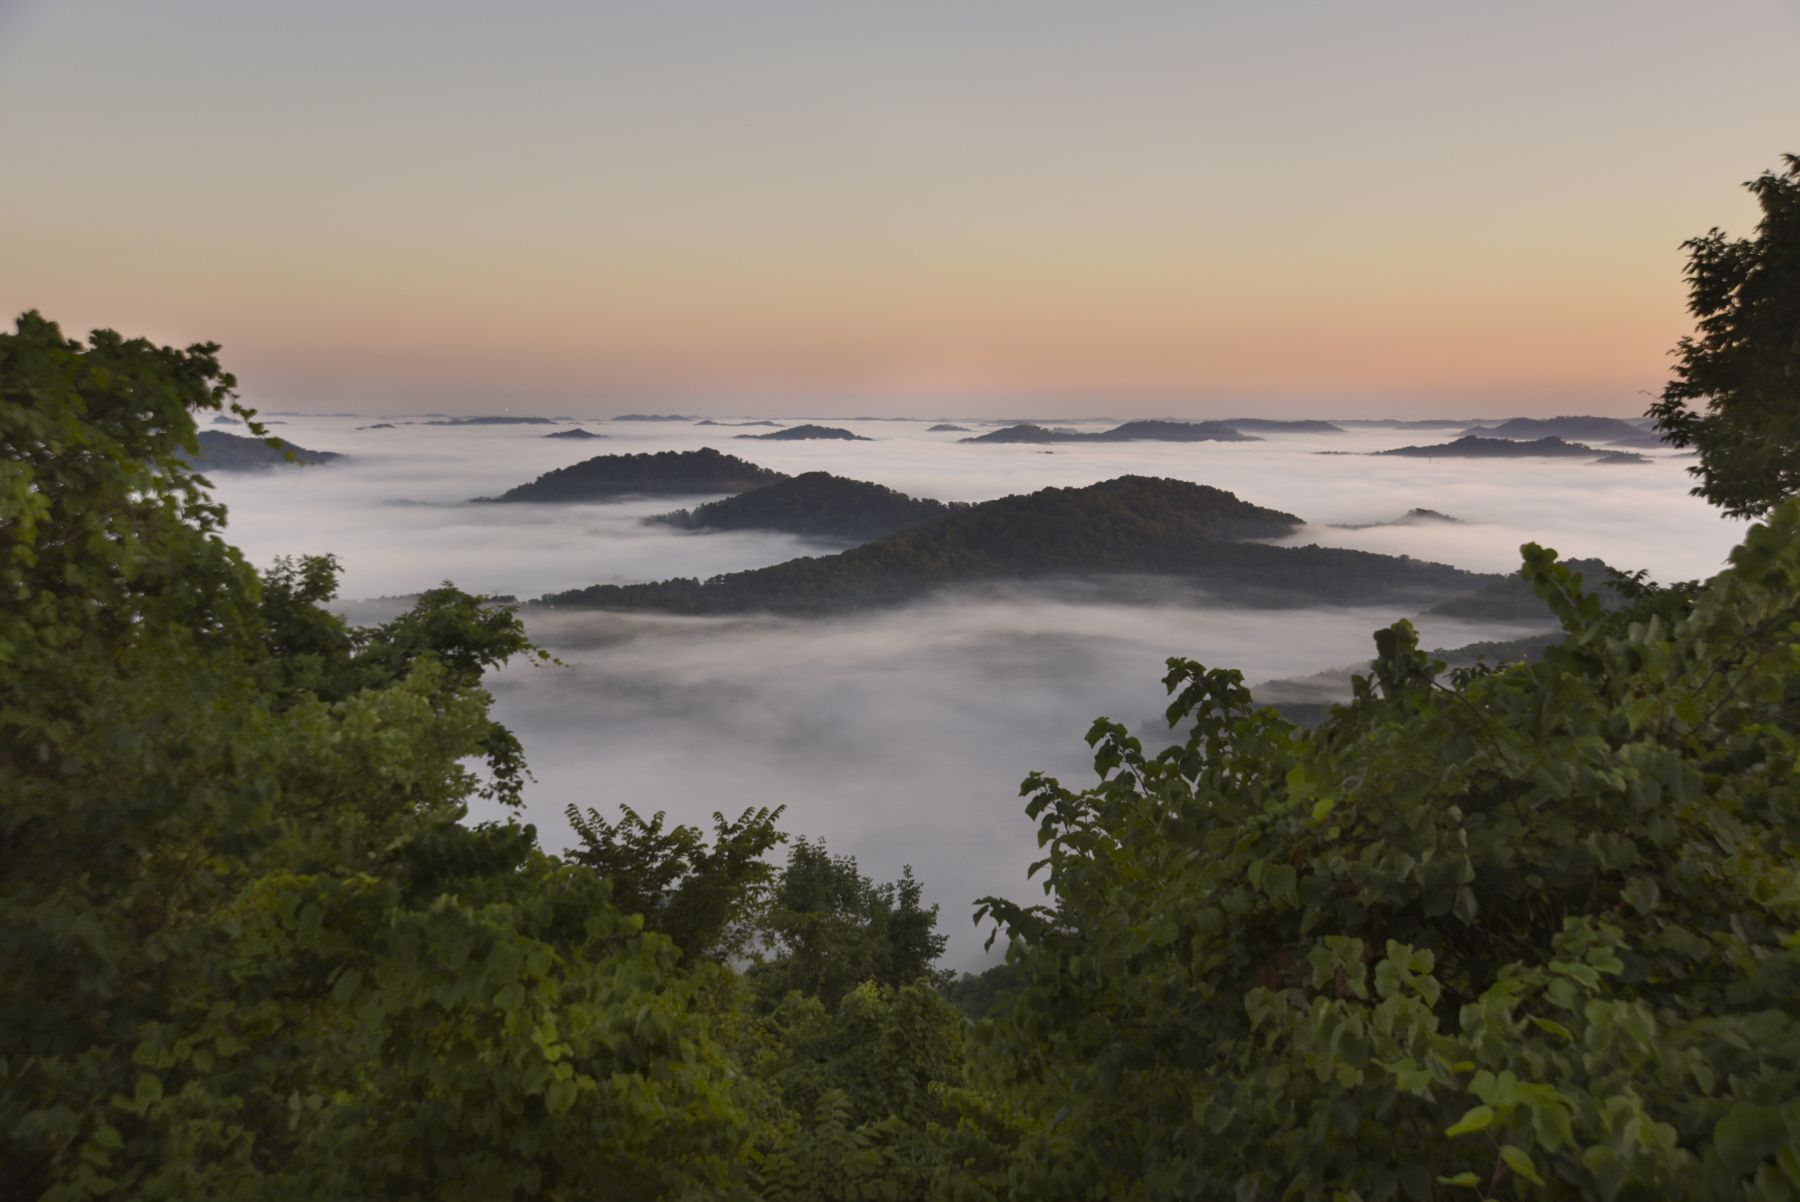 Stacy Kranitz  Pine Mountain, Kentucky, 2016  Archival pigment print  16 x 24 inches, Edition of 7  27 x 40 inches, Edition of 5, Blue Ridge Mtn in mist.